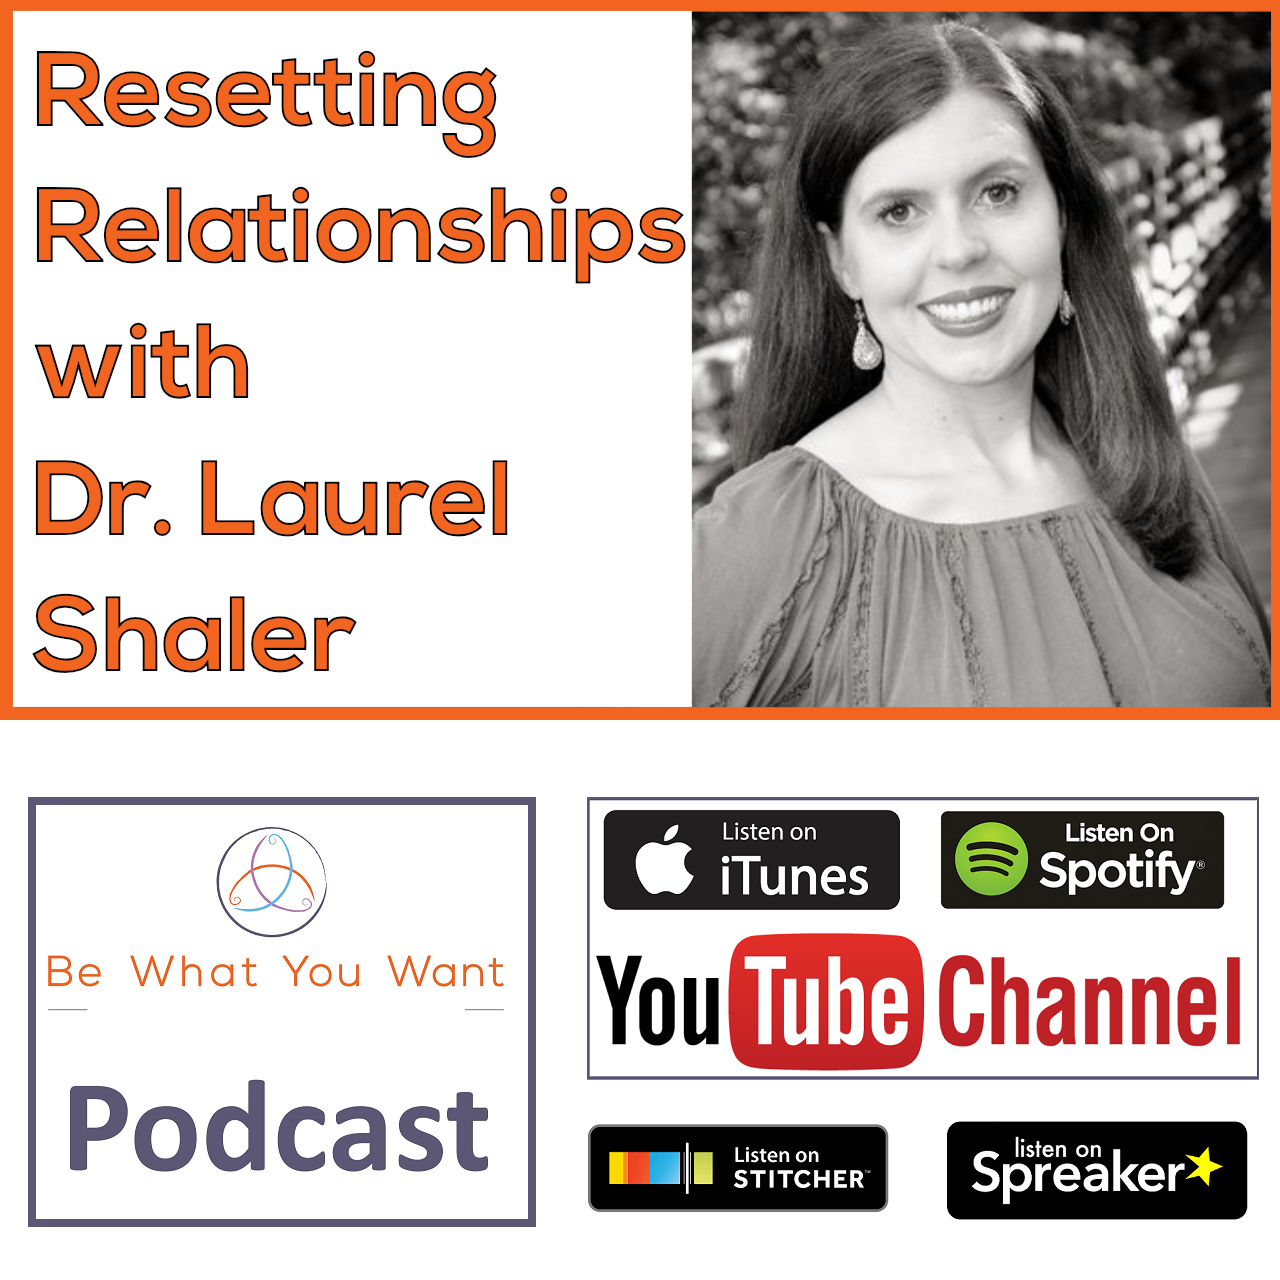 Resetting Relationships - Dr. Laurel Shaler